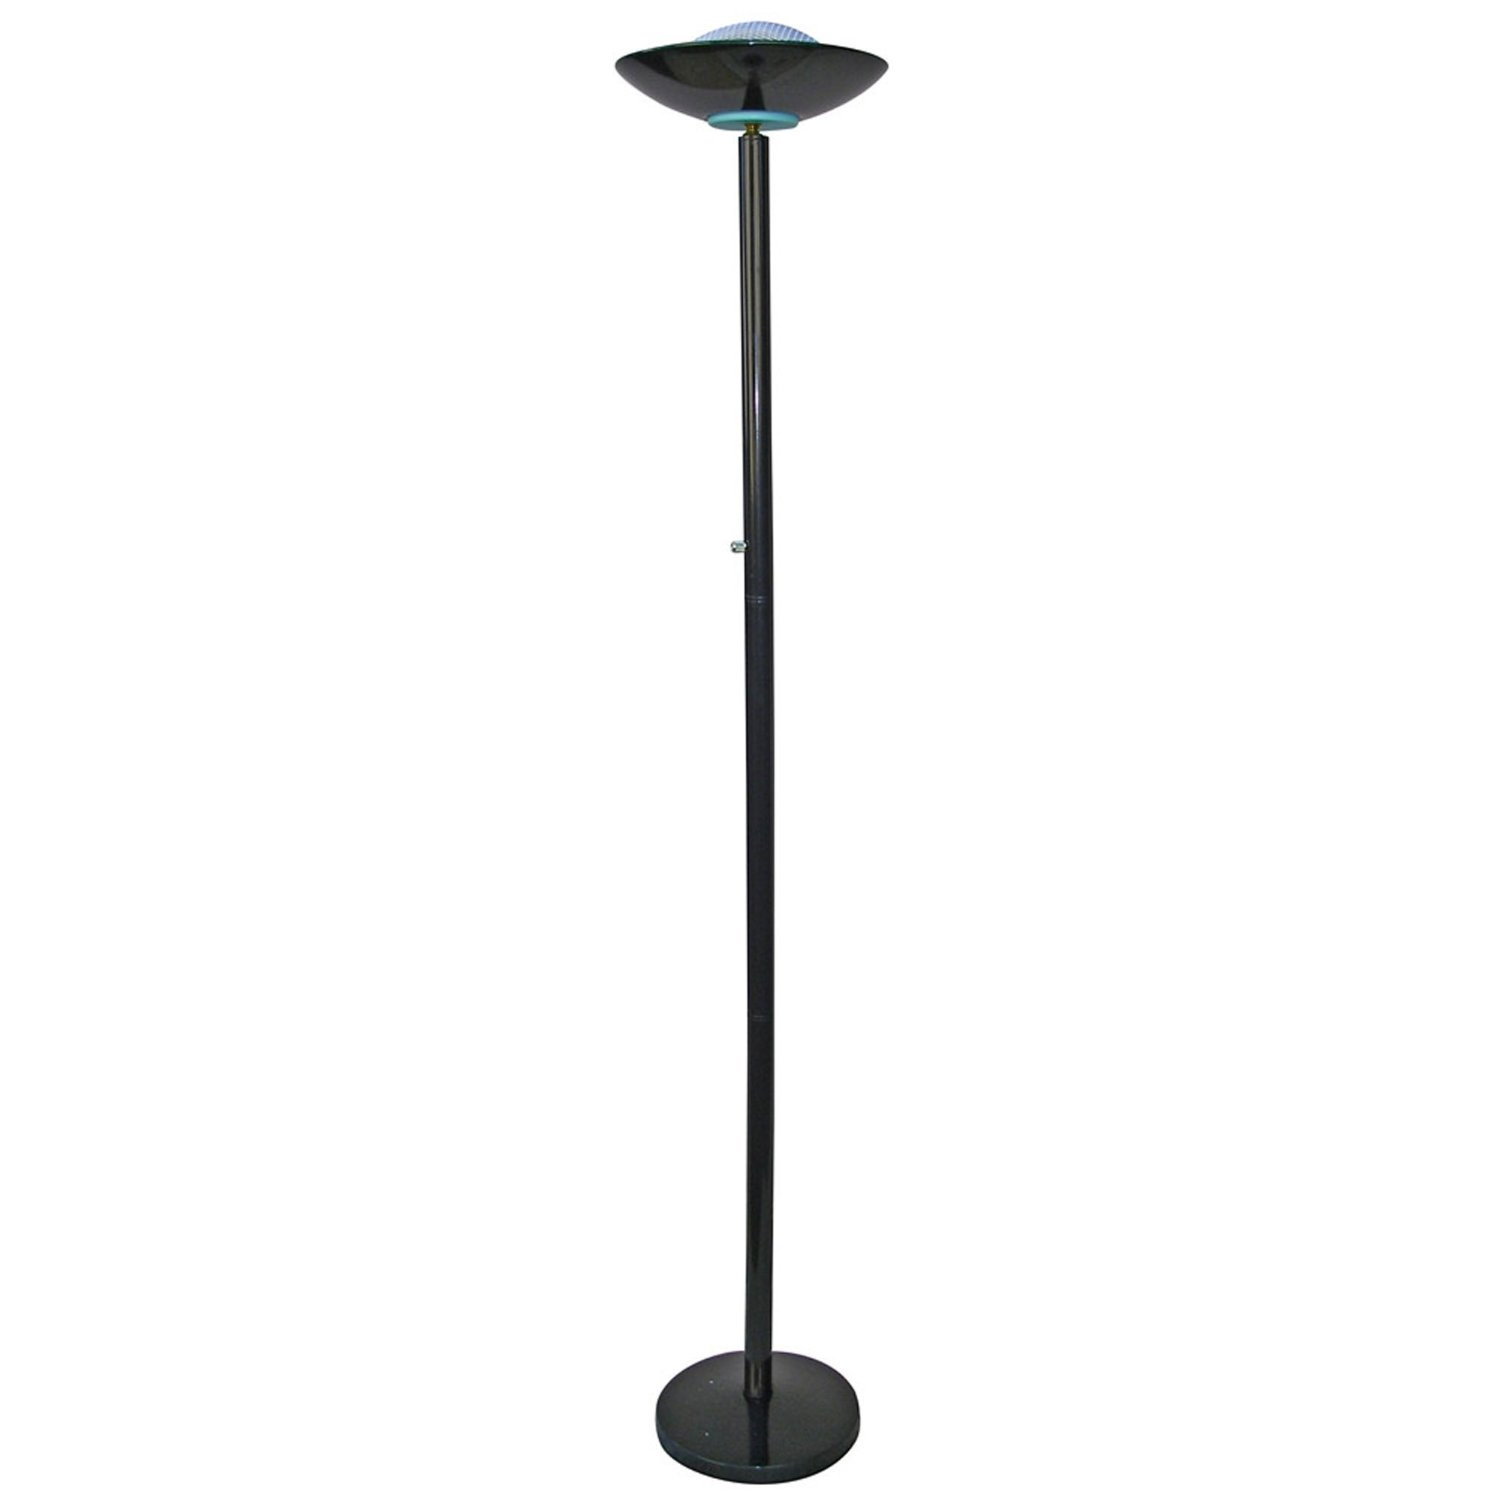 Versatility of 300 watts halogen torchiere floor lamps warisan 300 watts halogen torchiere floor lamp photo 2 mozeypictures Image collections